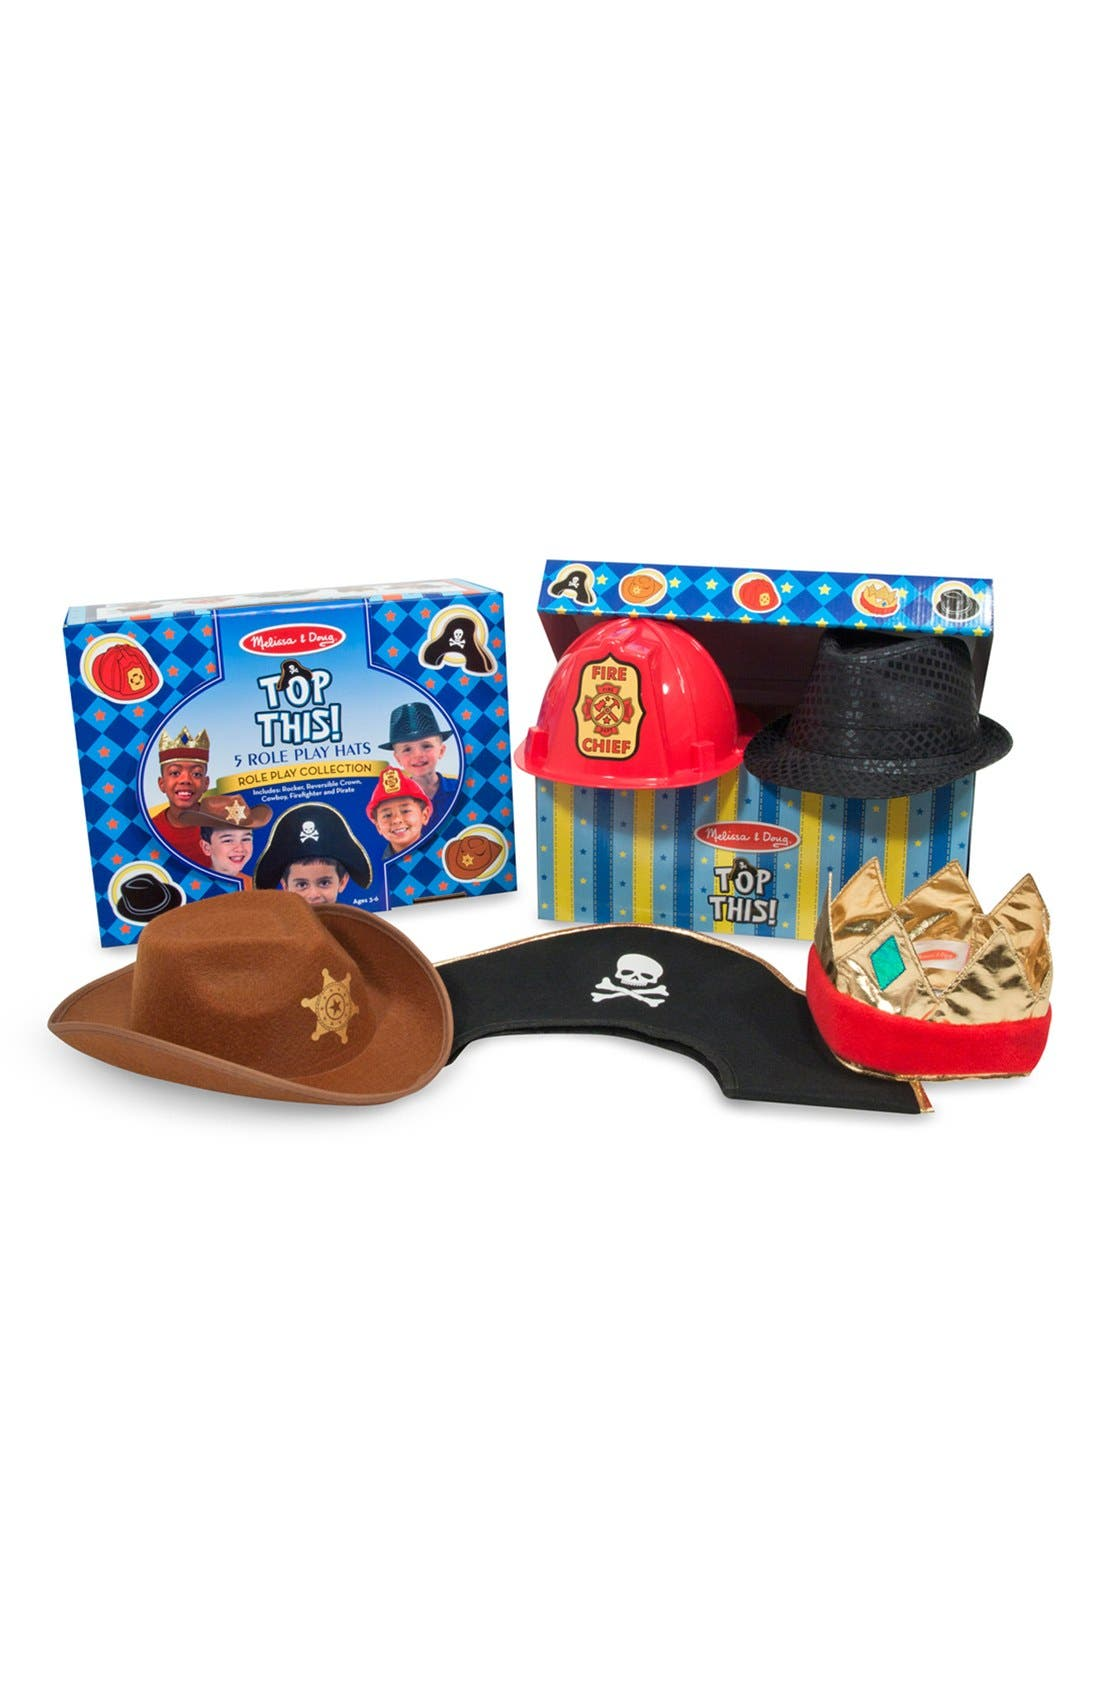 Melissa & Doug 'Role Play Collection - Top This!' Hats